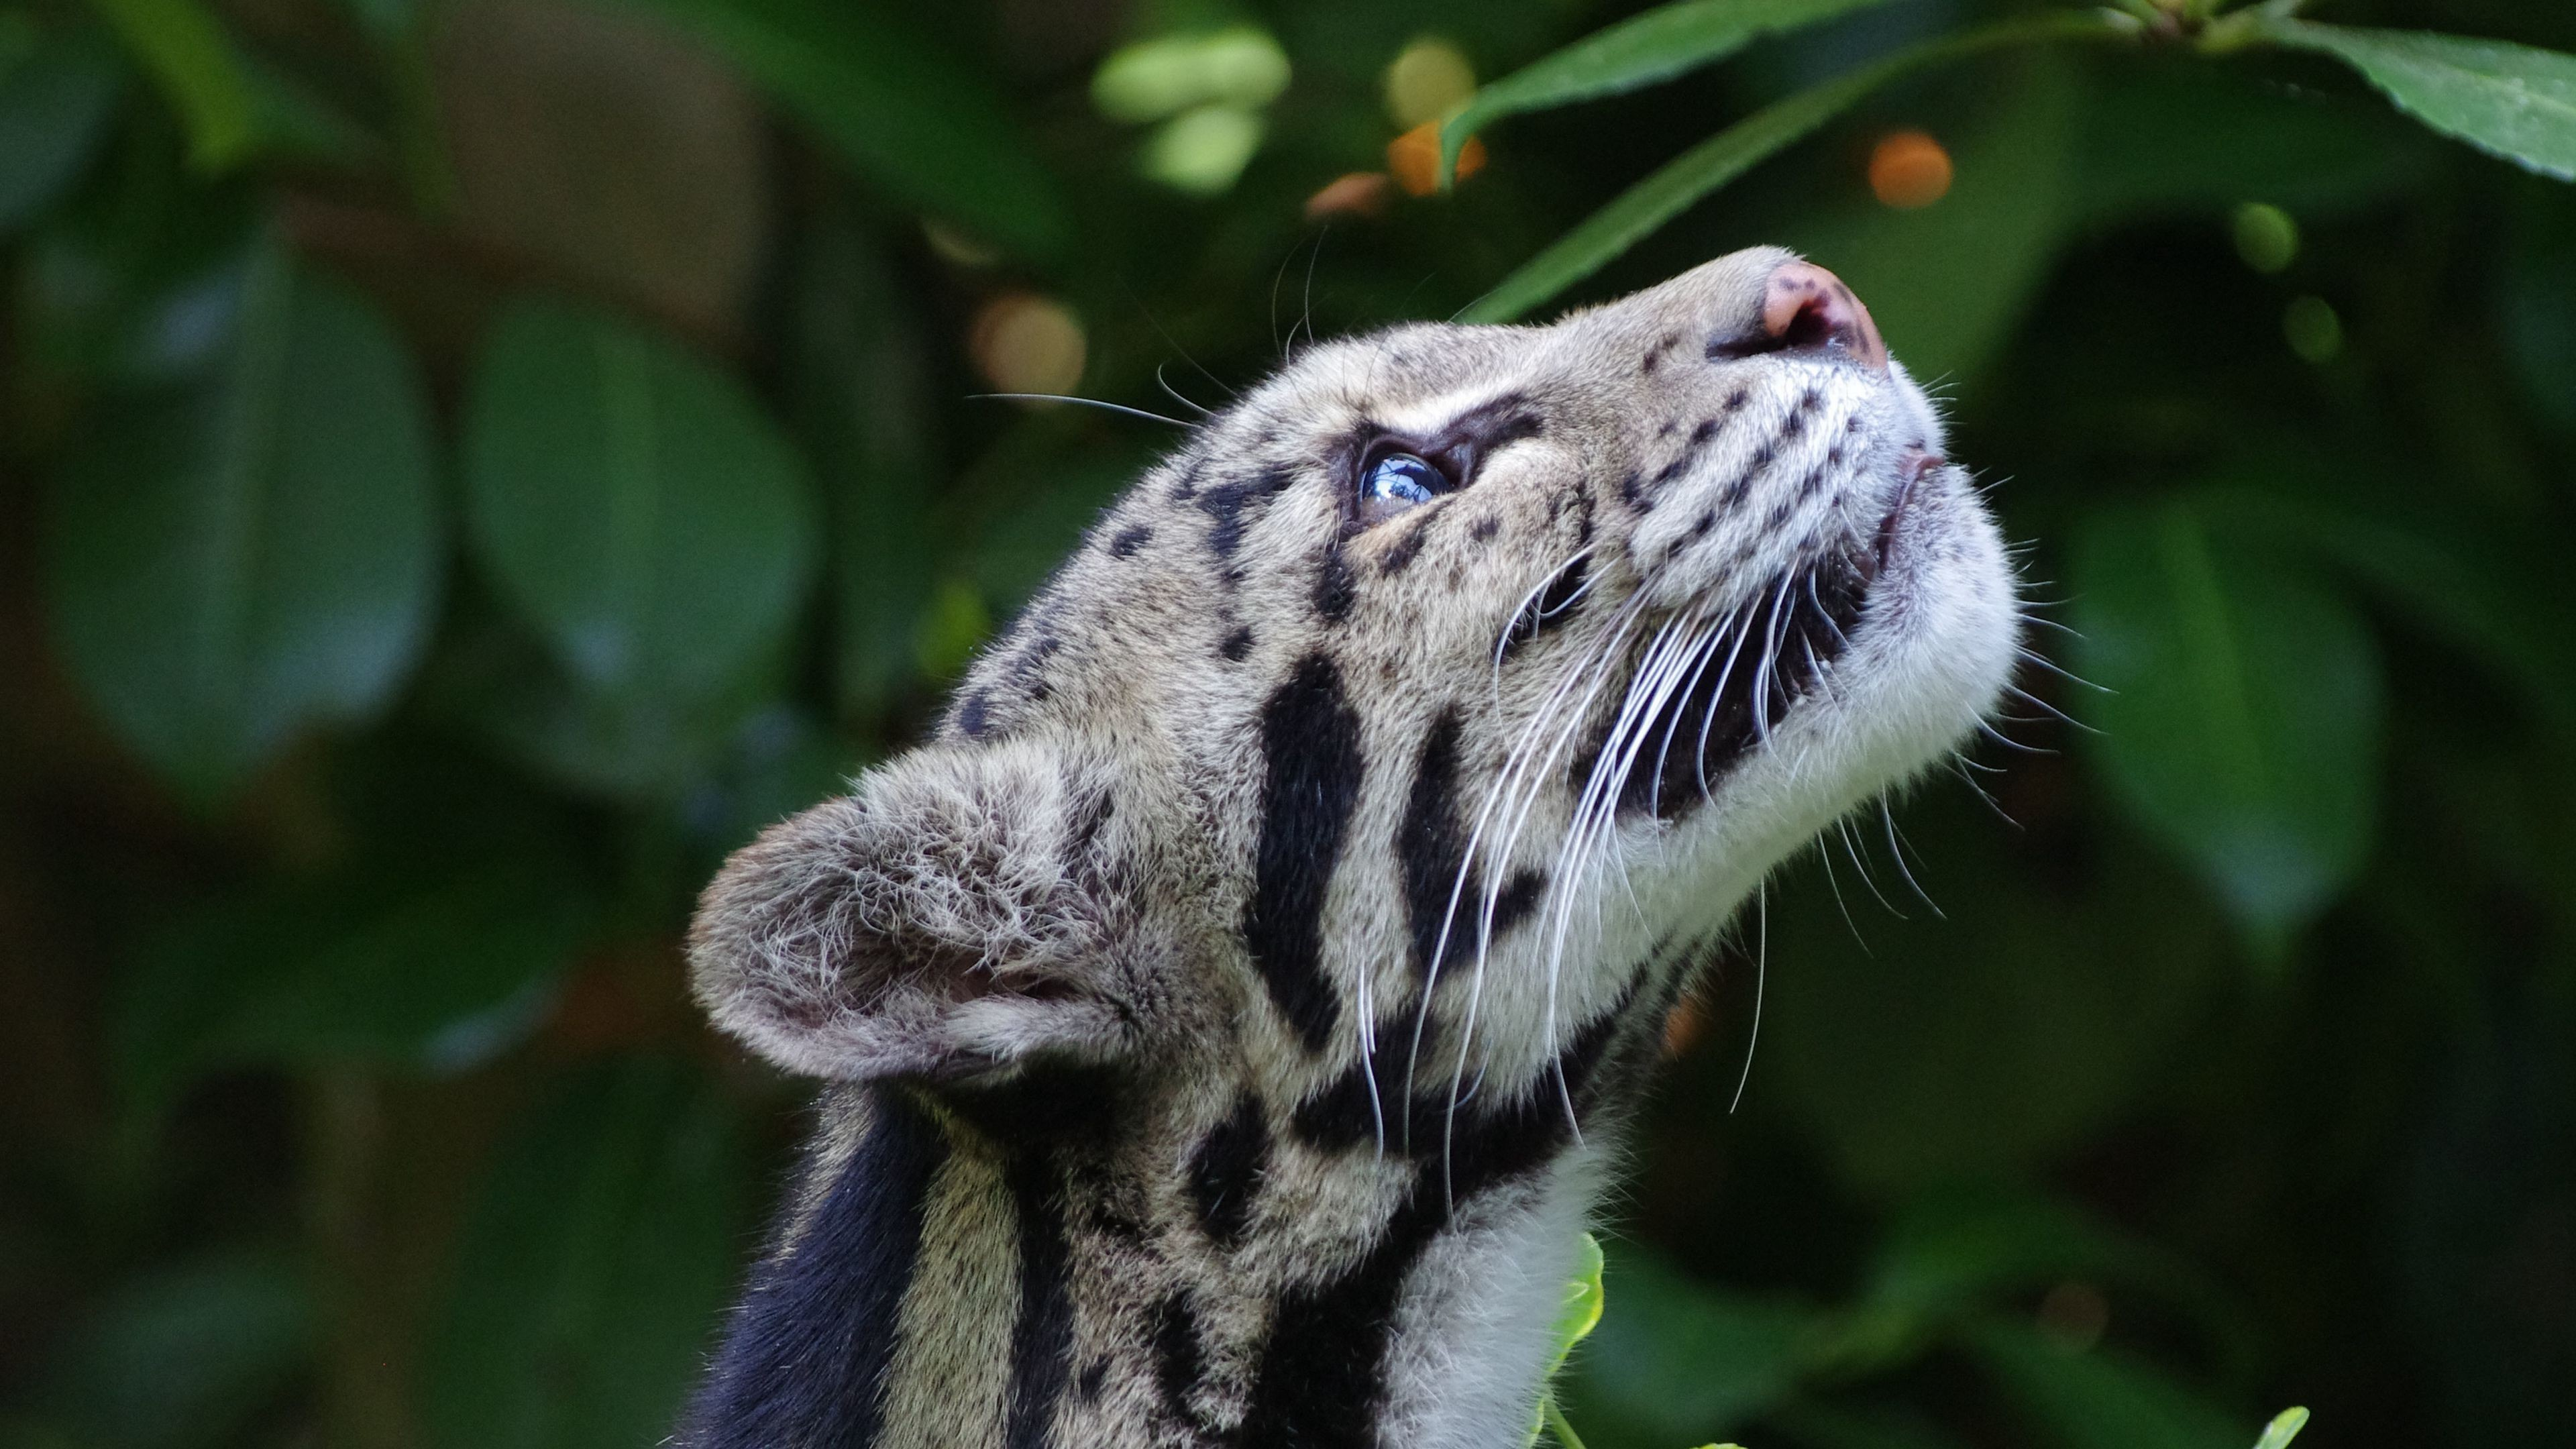 Clouded Leopard Wild Cat Snout Spotted Wallpaper 3840x2160 px